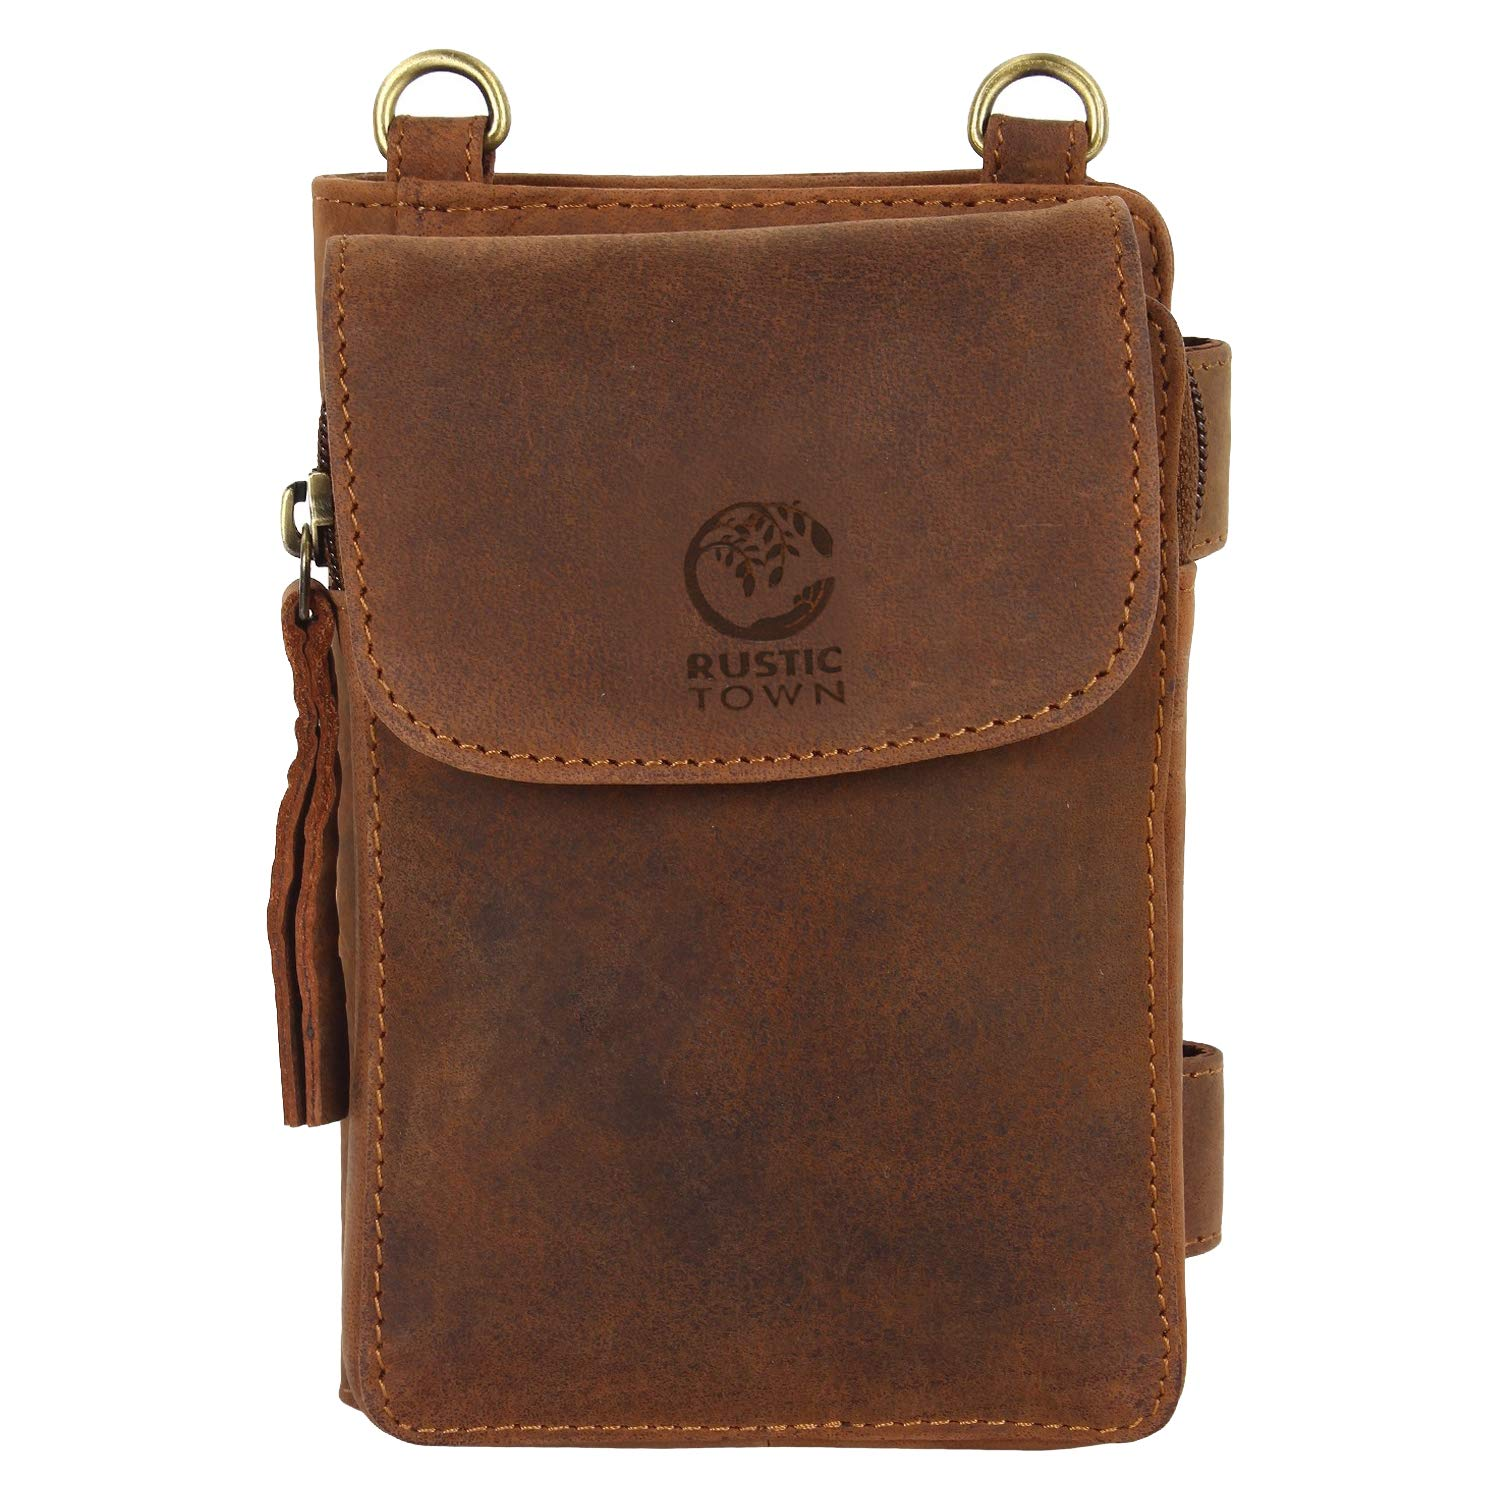 8334f01498e Amazon.com: Rustic Town Leather Crossbody Purse for Women - Travel Wallet, Neck  Wallet and Passport Holder for Ladies Brown: Shoes